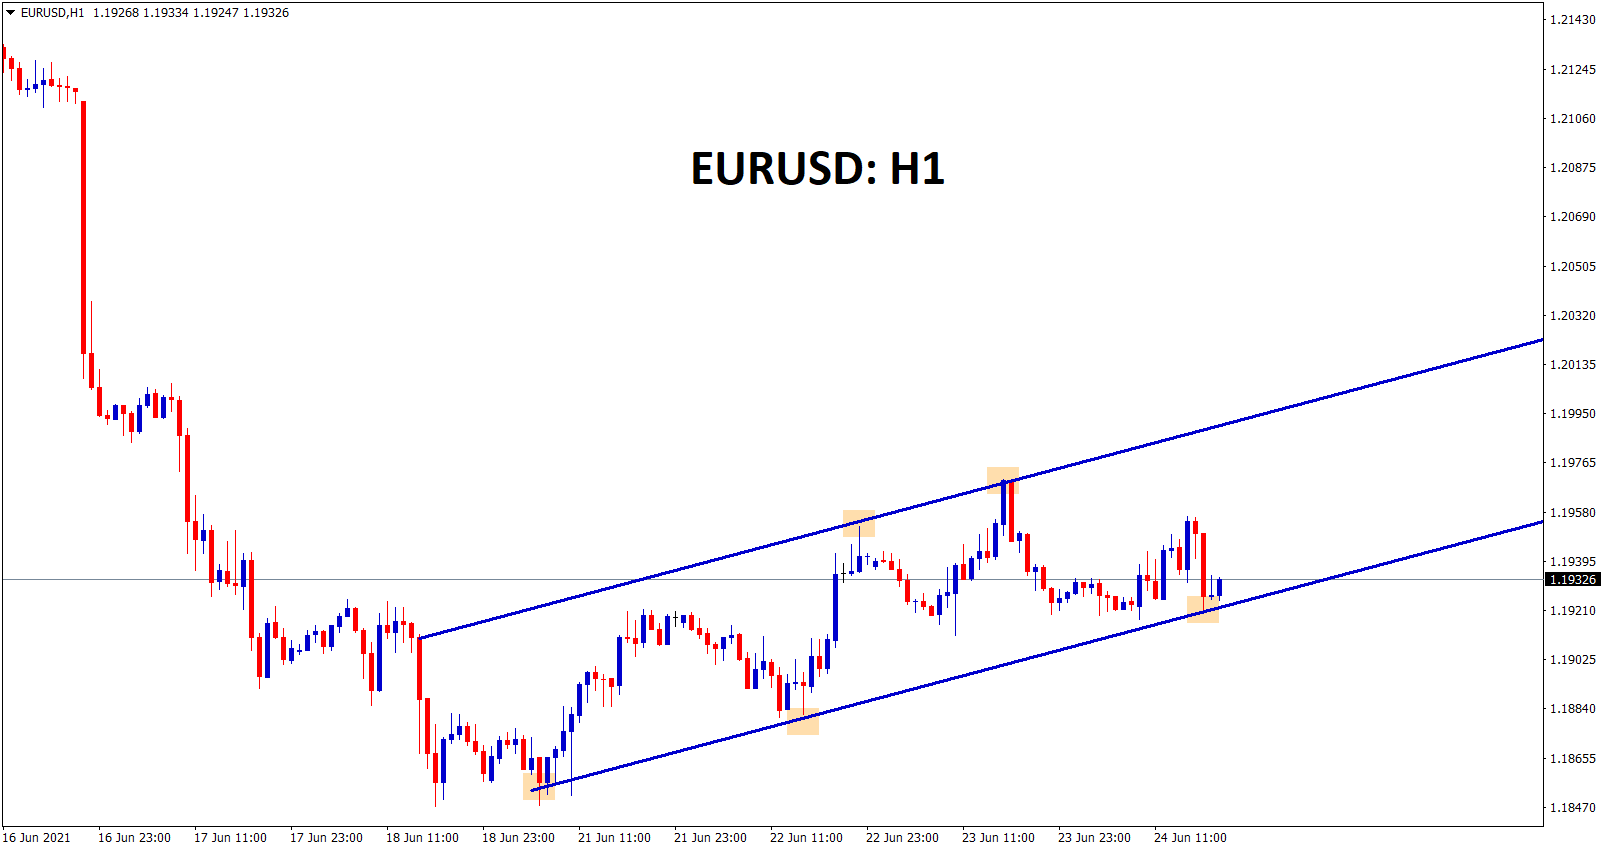 EURUSD is moving in an Uptrend forming higher highs and higher lows